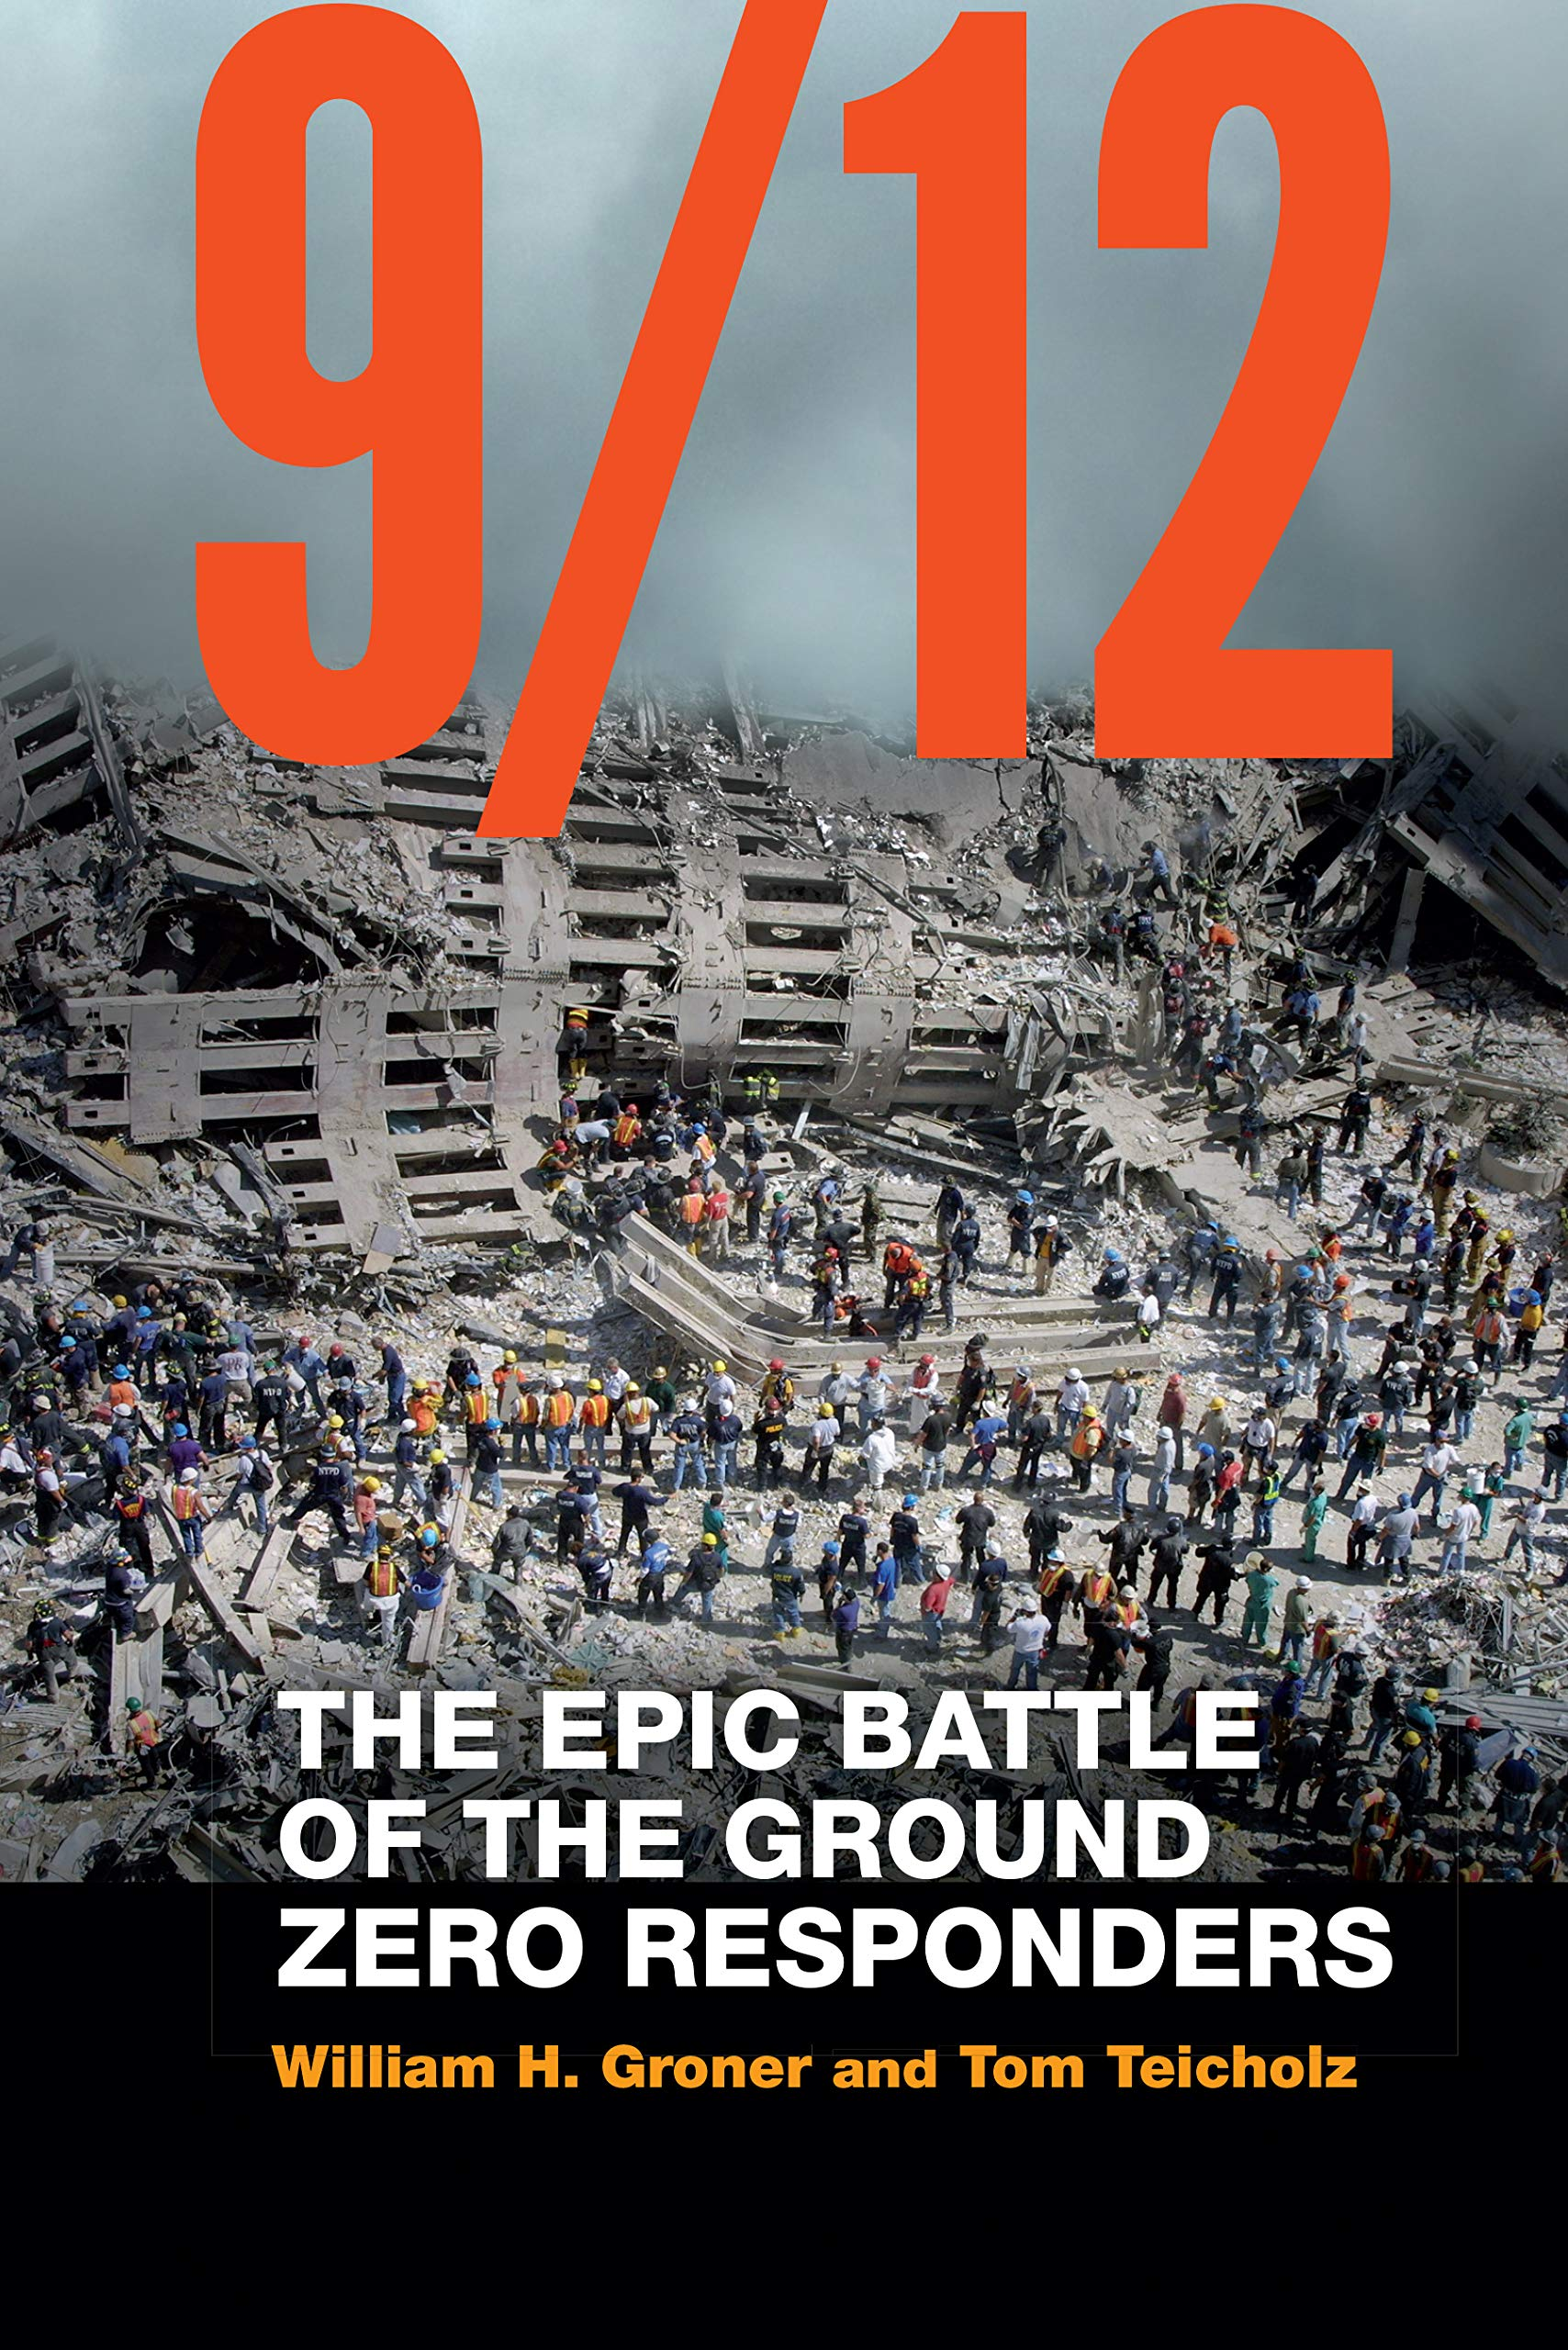 9/12: The Epic Battle of the Ground Zero Responders by University of Nebraska Press